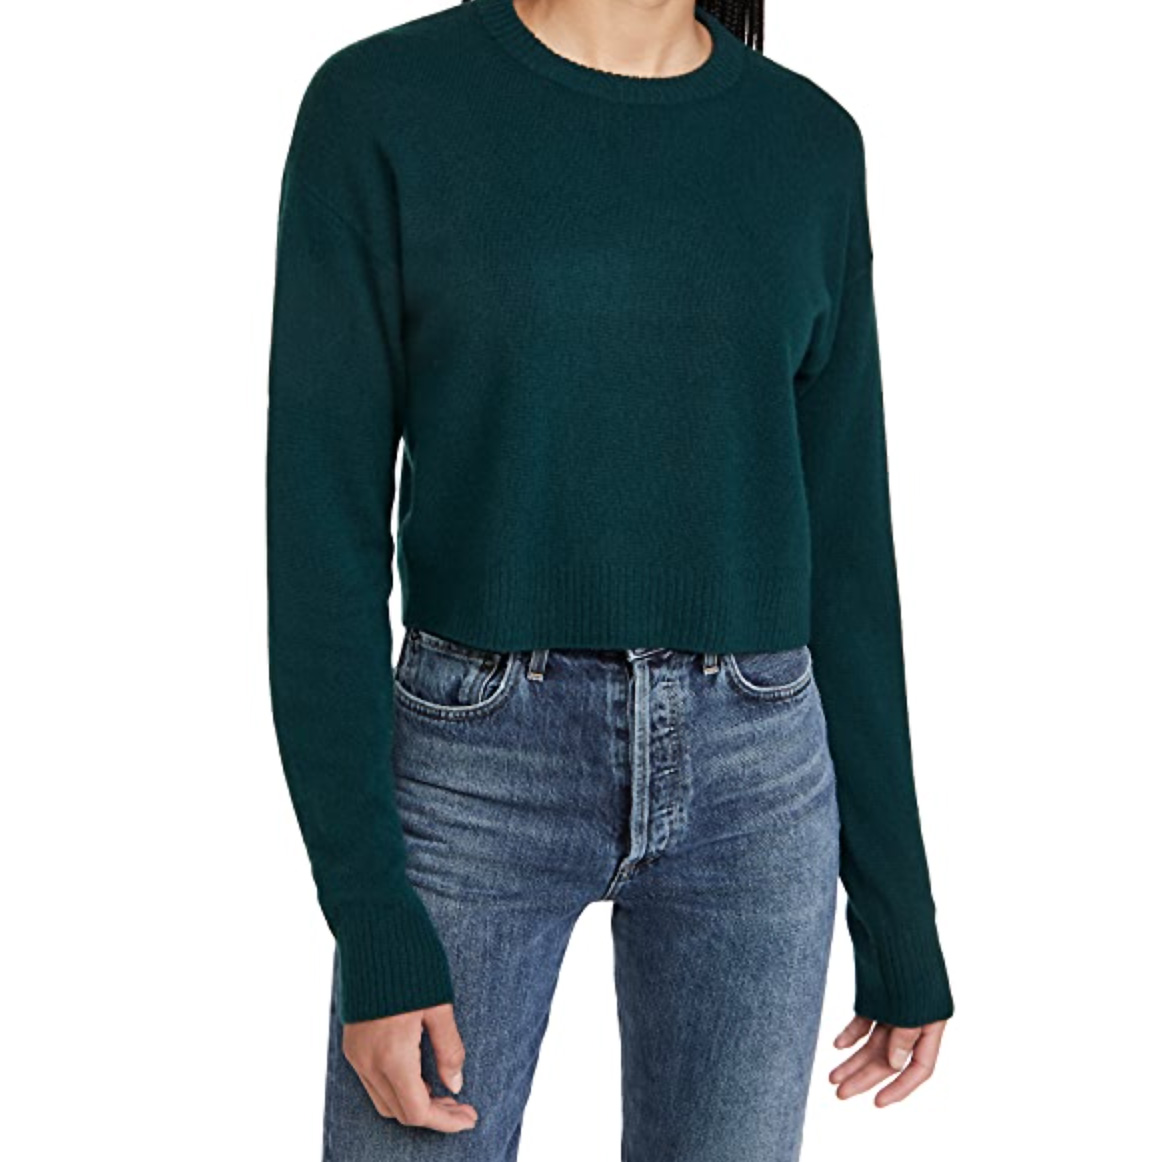 best cashmere sweaters reformation shopbop